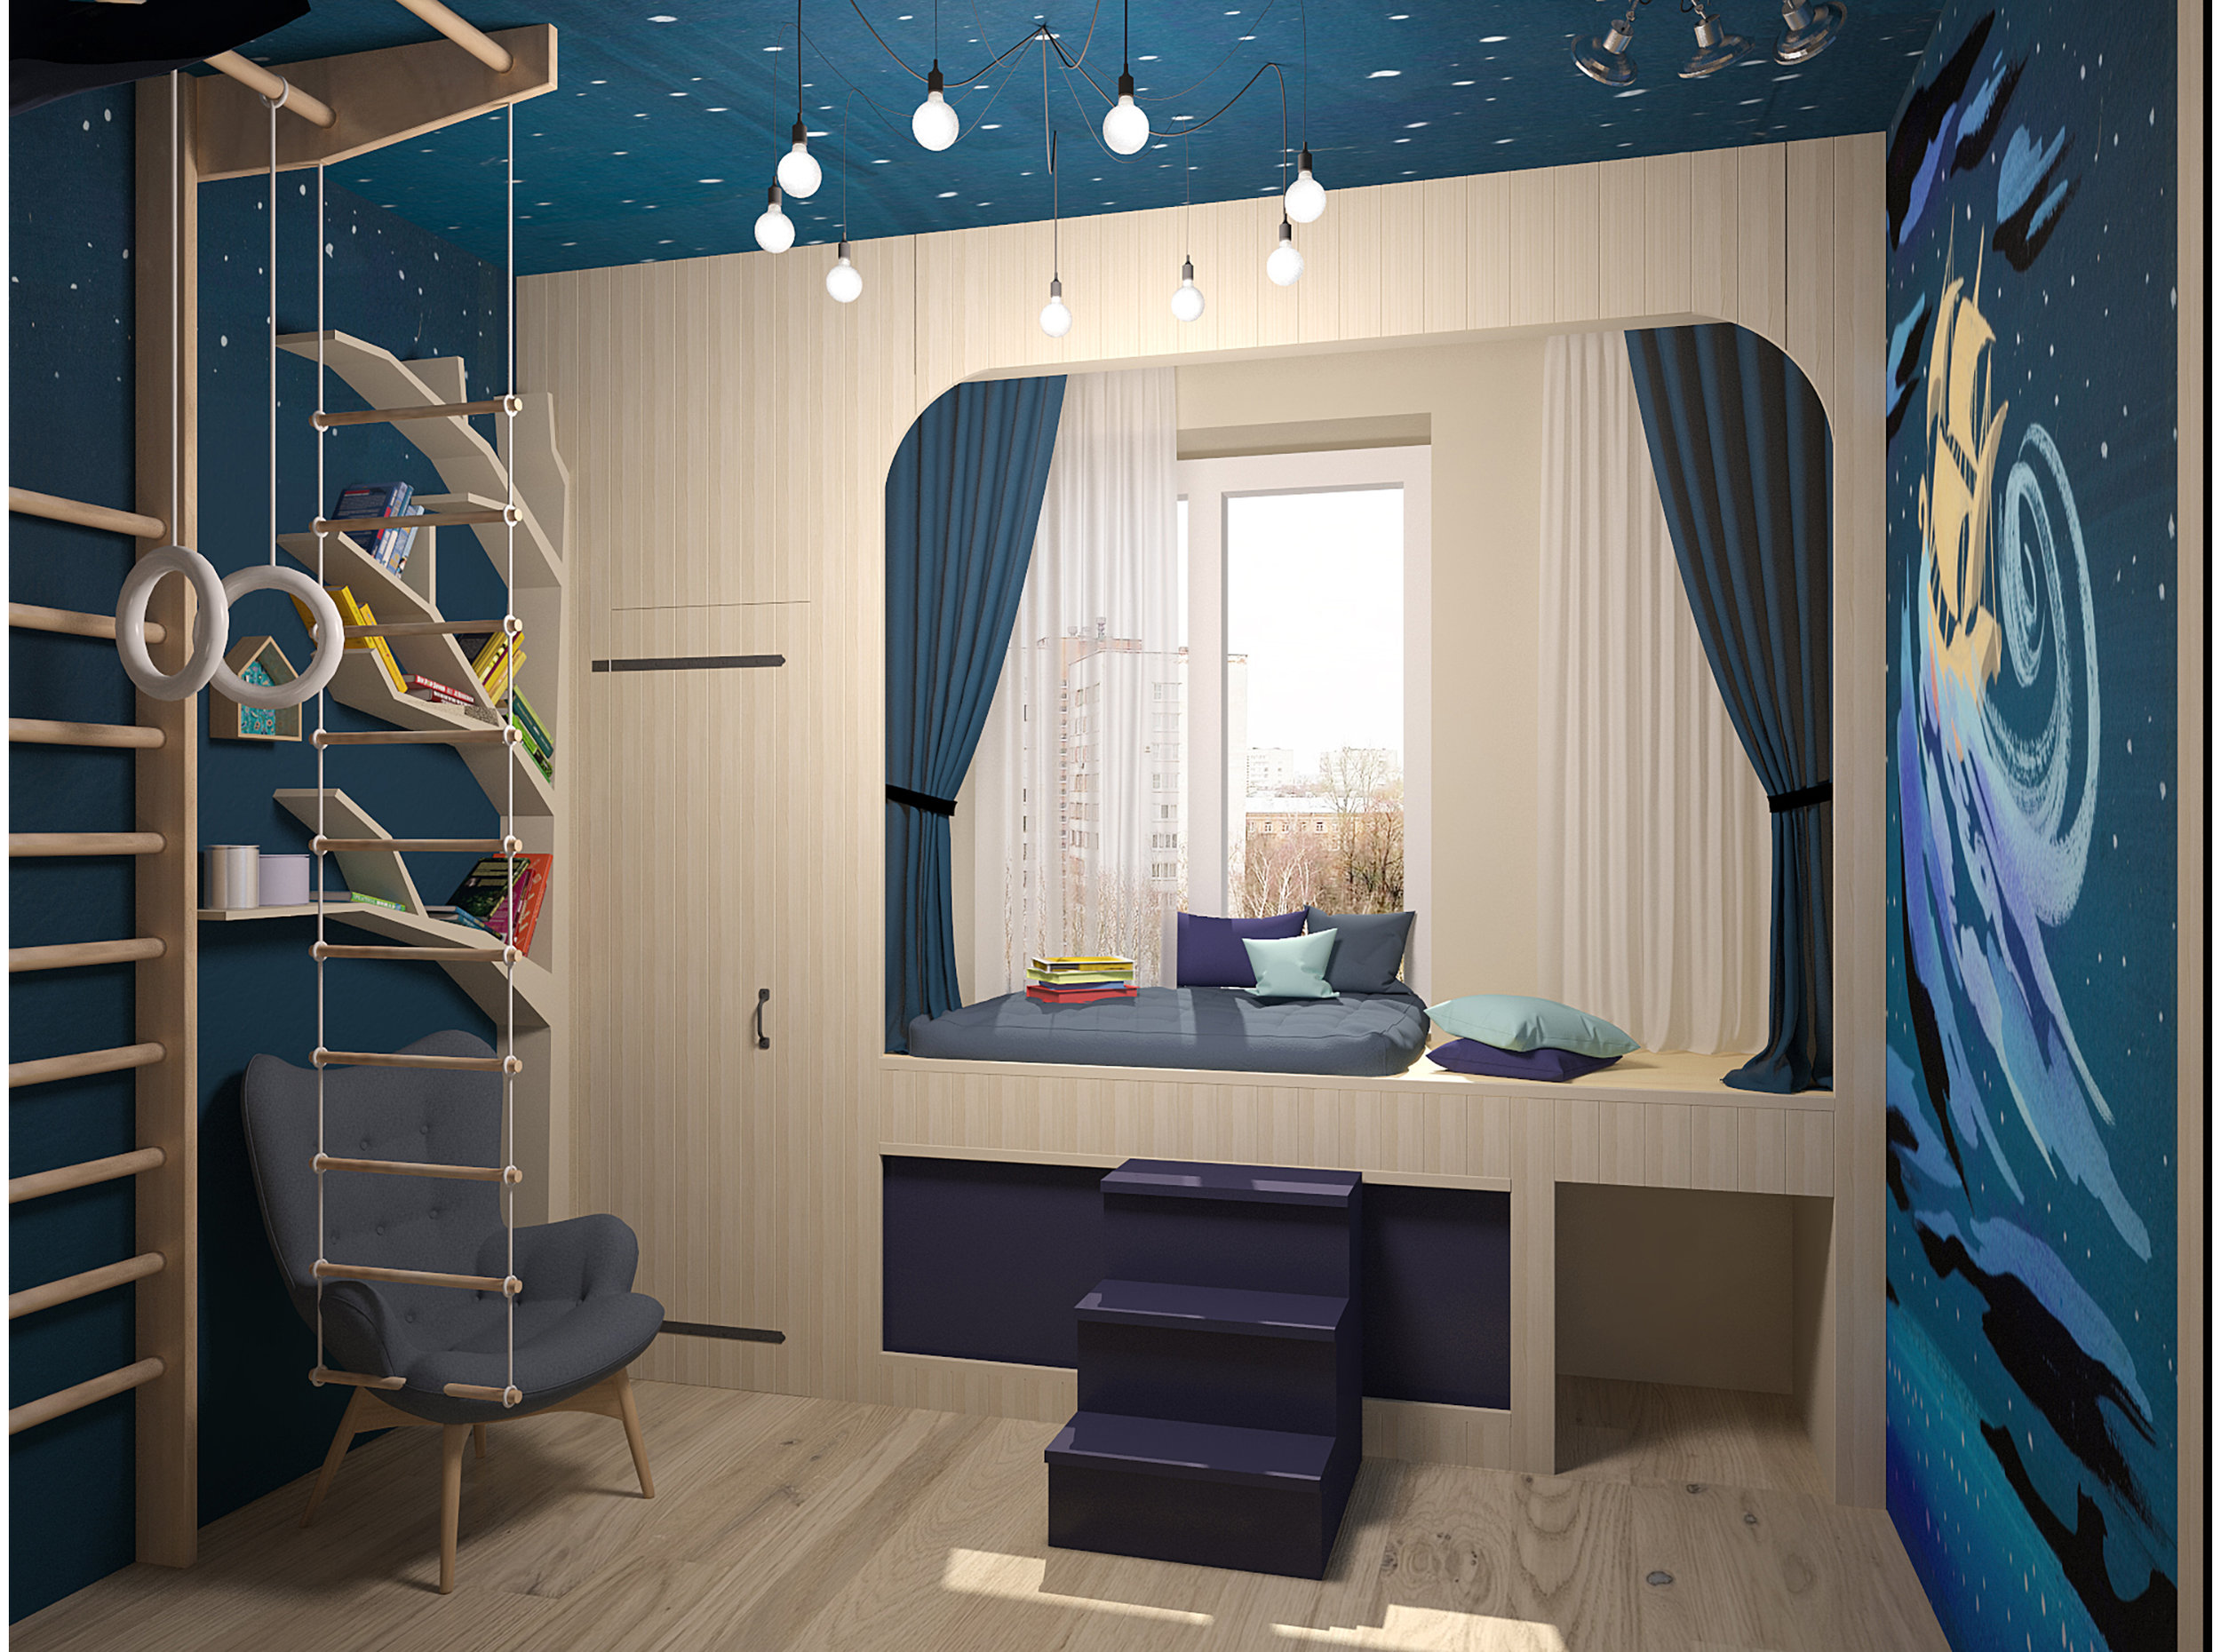 Boy bedroom interior inspired by Peter Pan